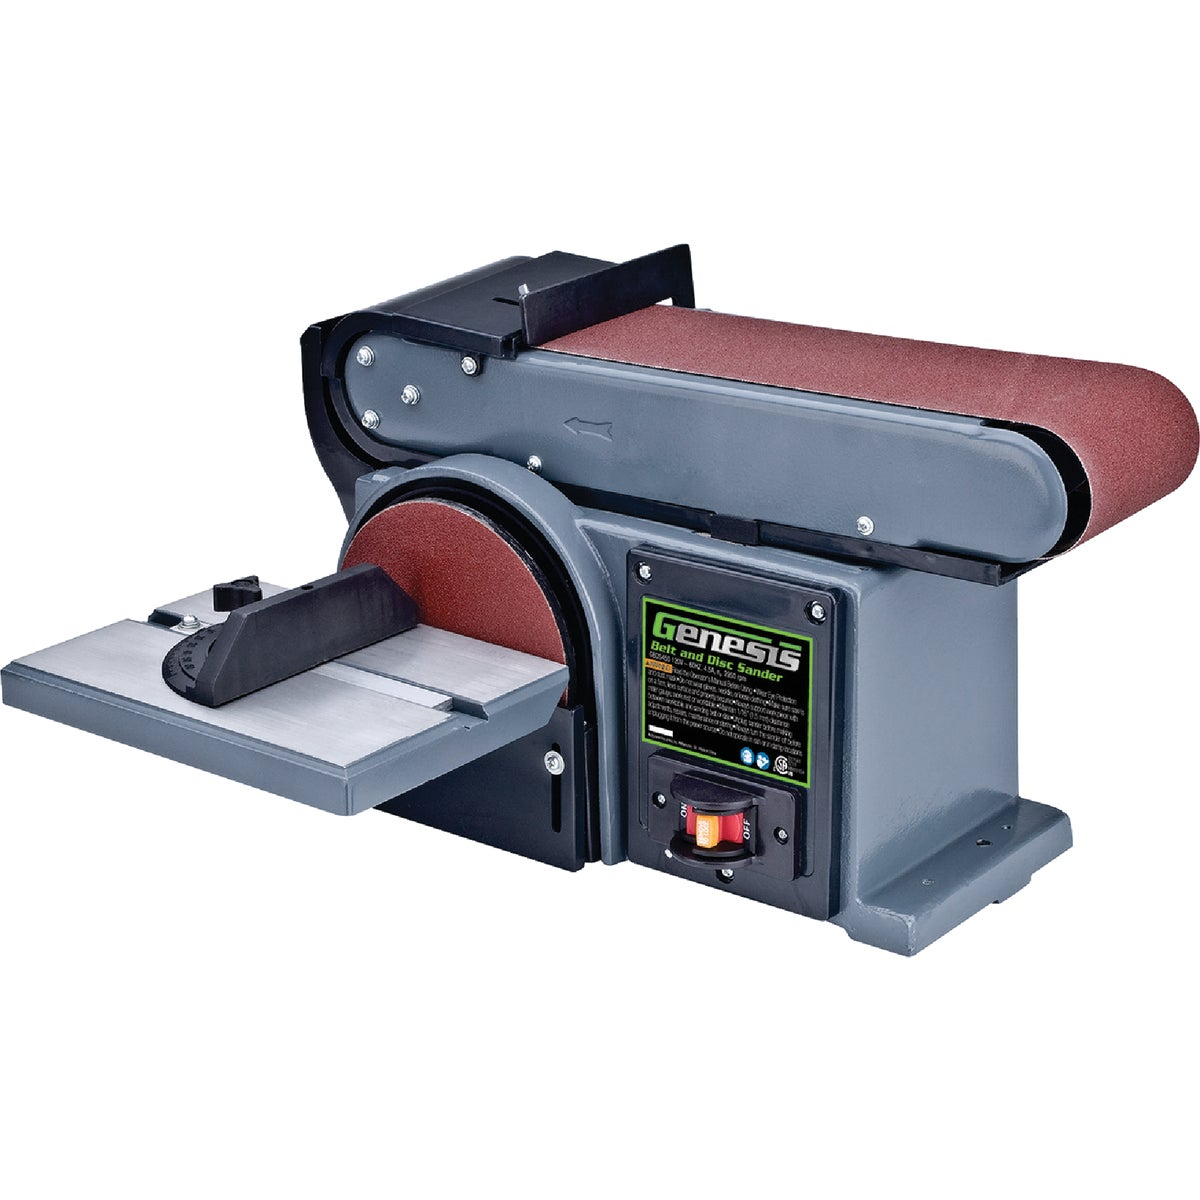 "6"" DISC & 4"" BELT SANDER - 3376-01 by Robt Bosch Tool Skil"